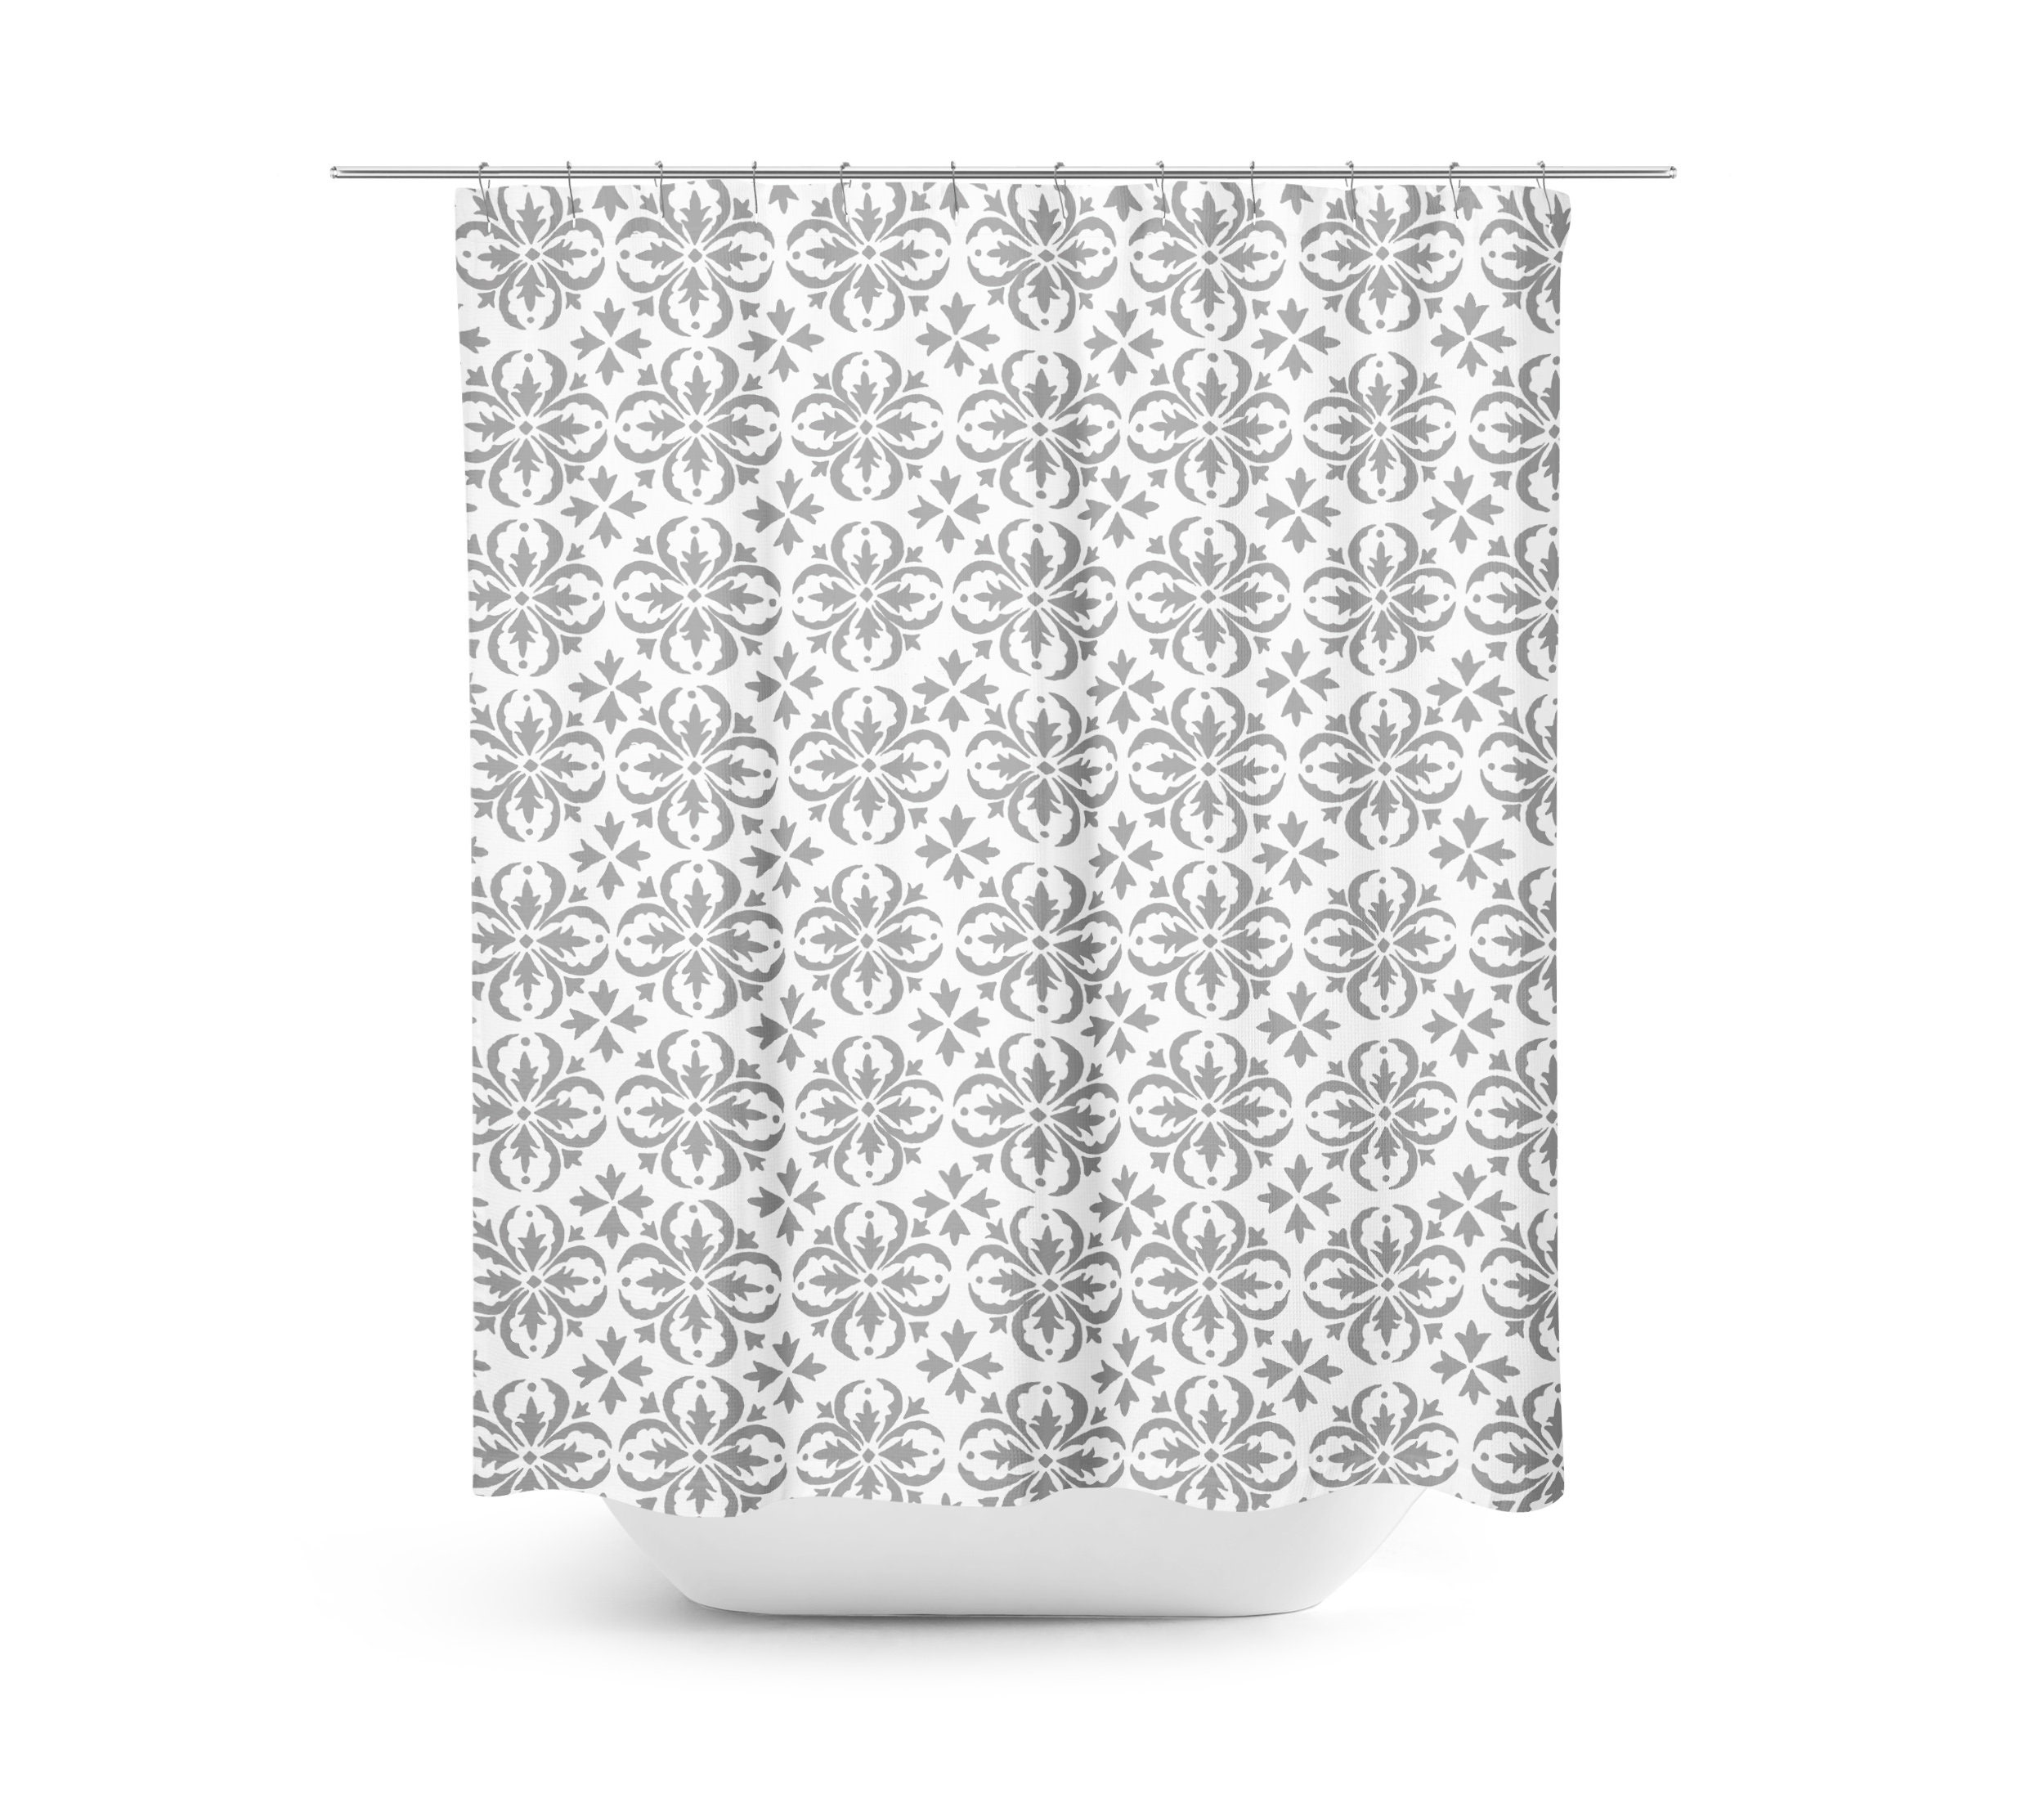 Farmhouse Shower Curtain Gray Bathroom Rustic White And Geometric Decor For Master Bath